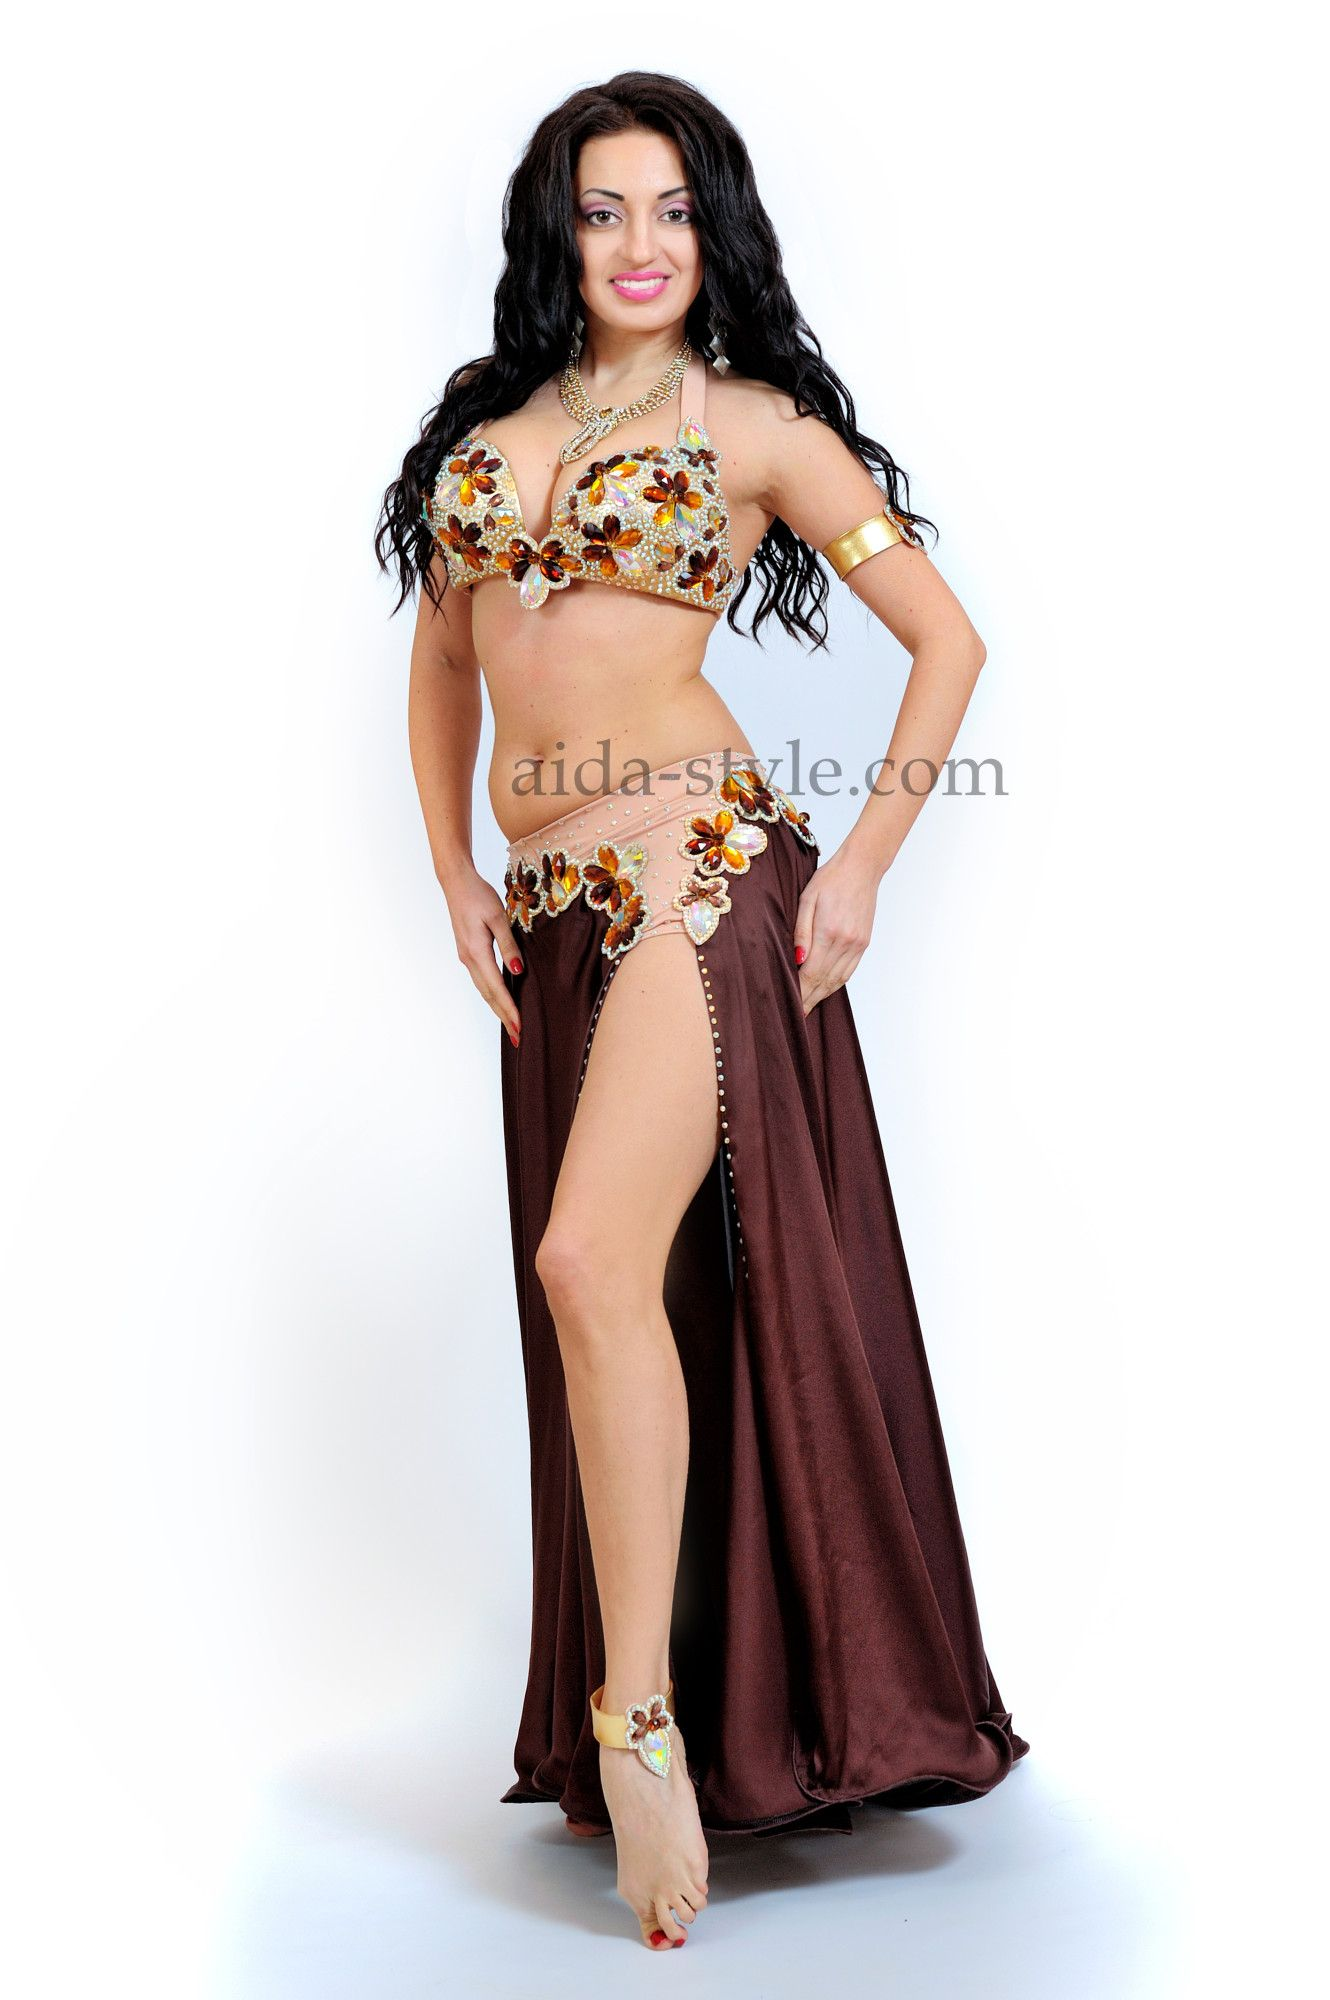 Classic collection dance costumes dancing and bellydance